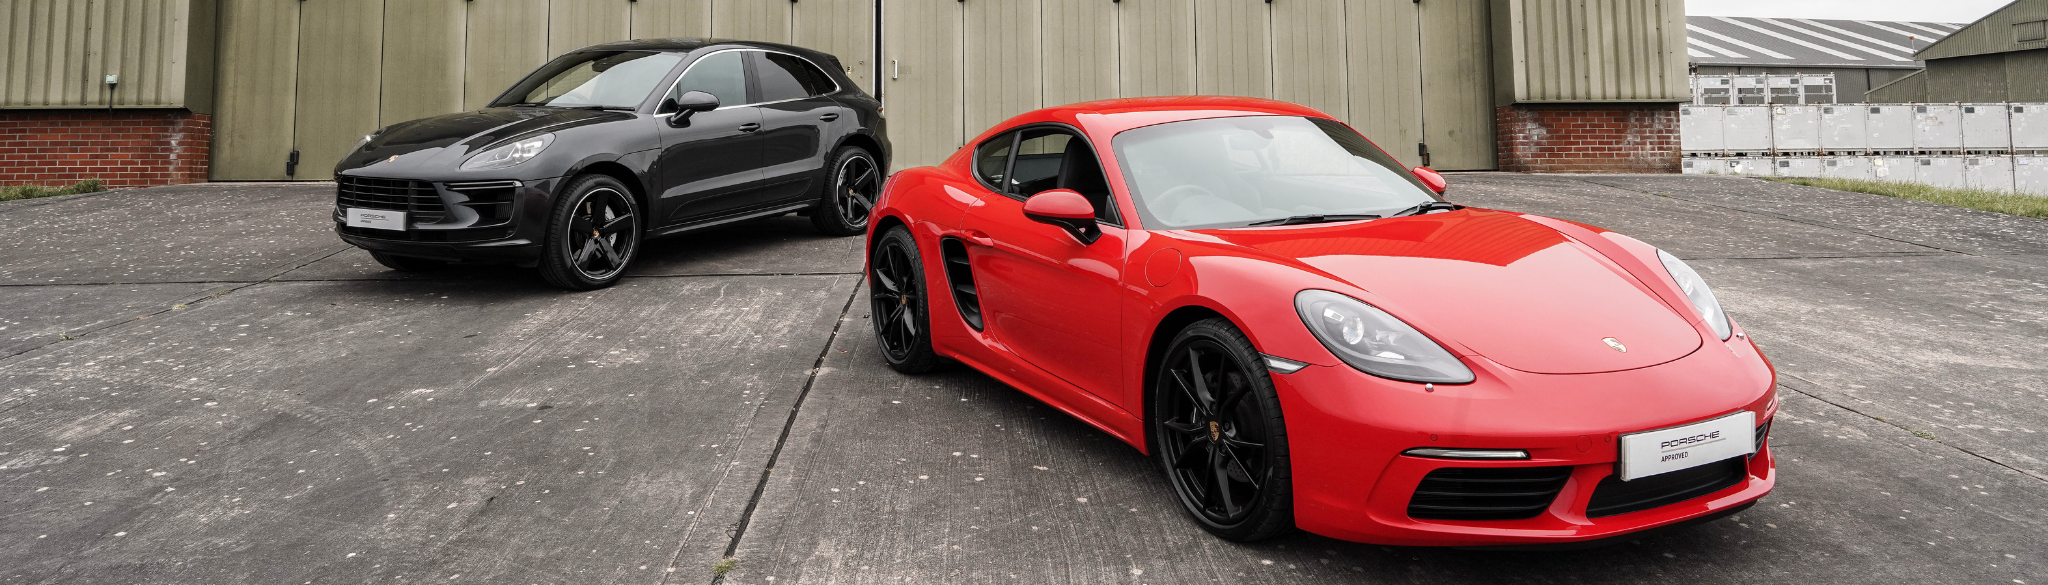 718 Cayman and Macan Turbo